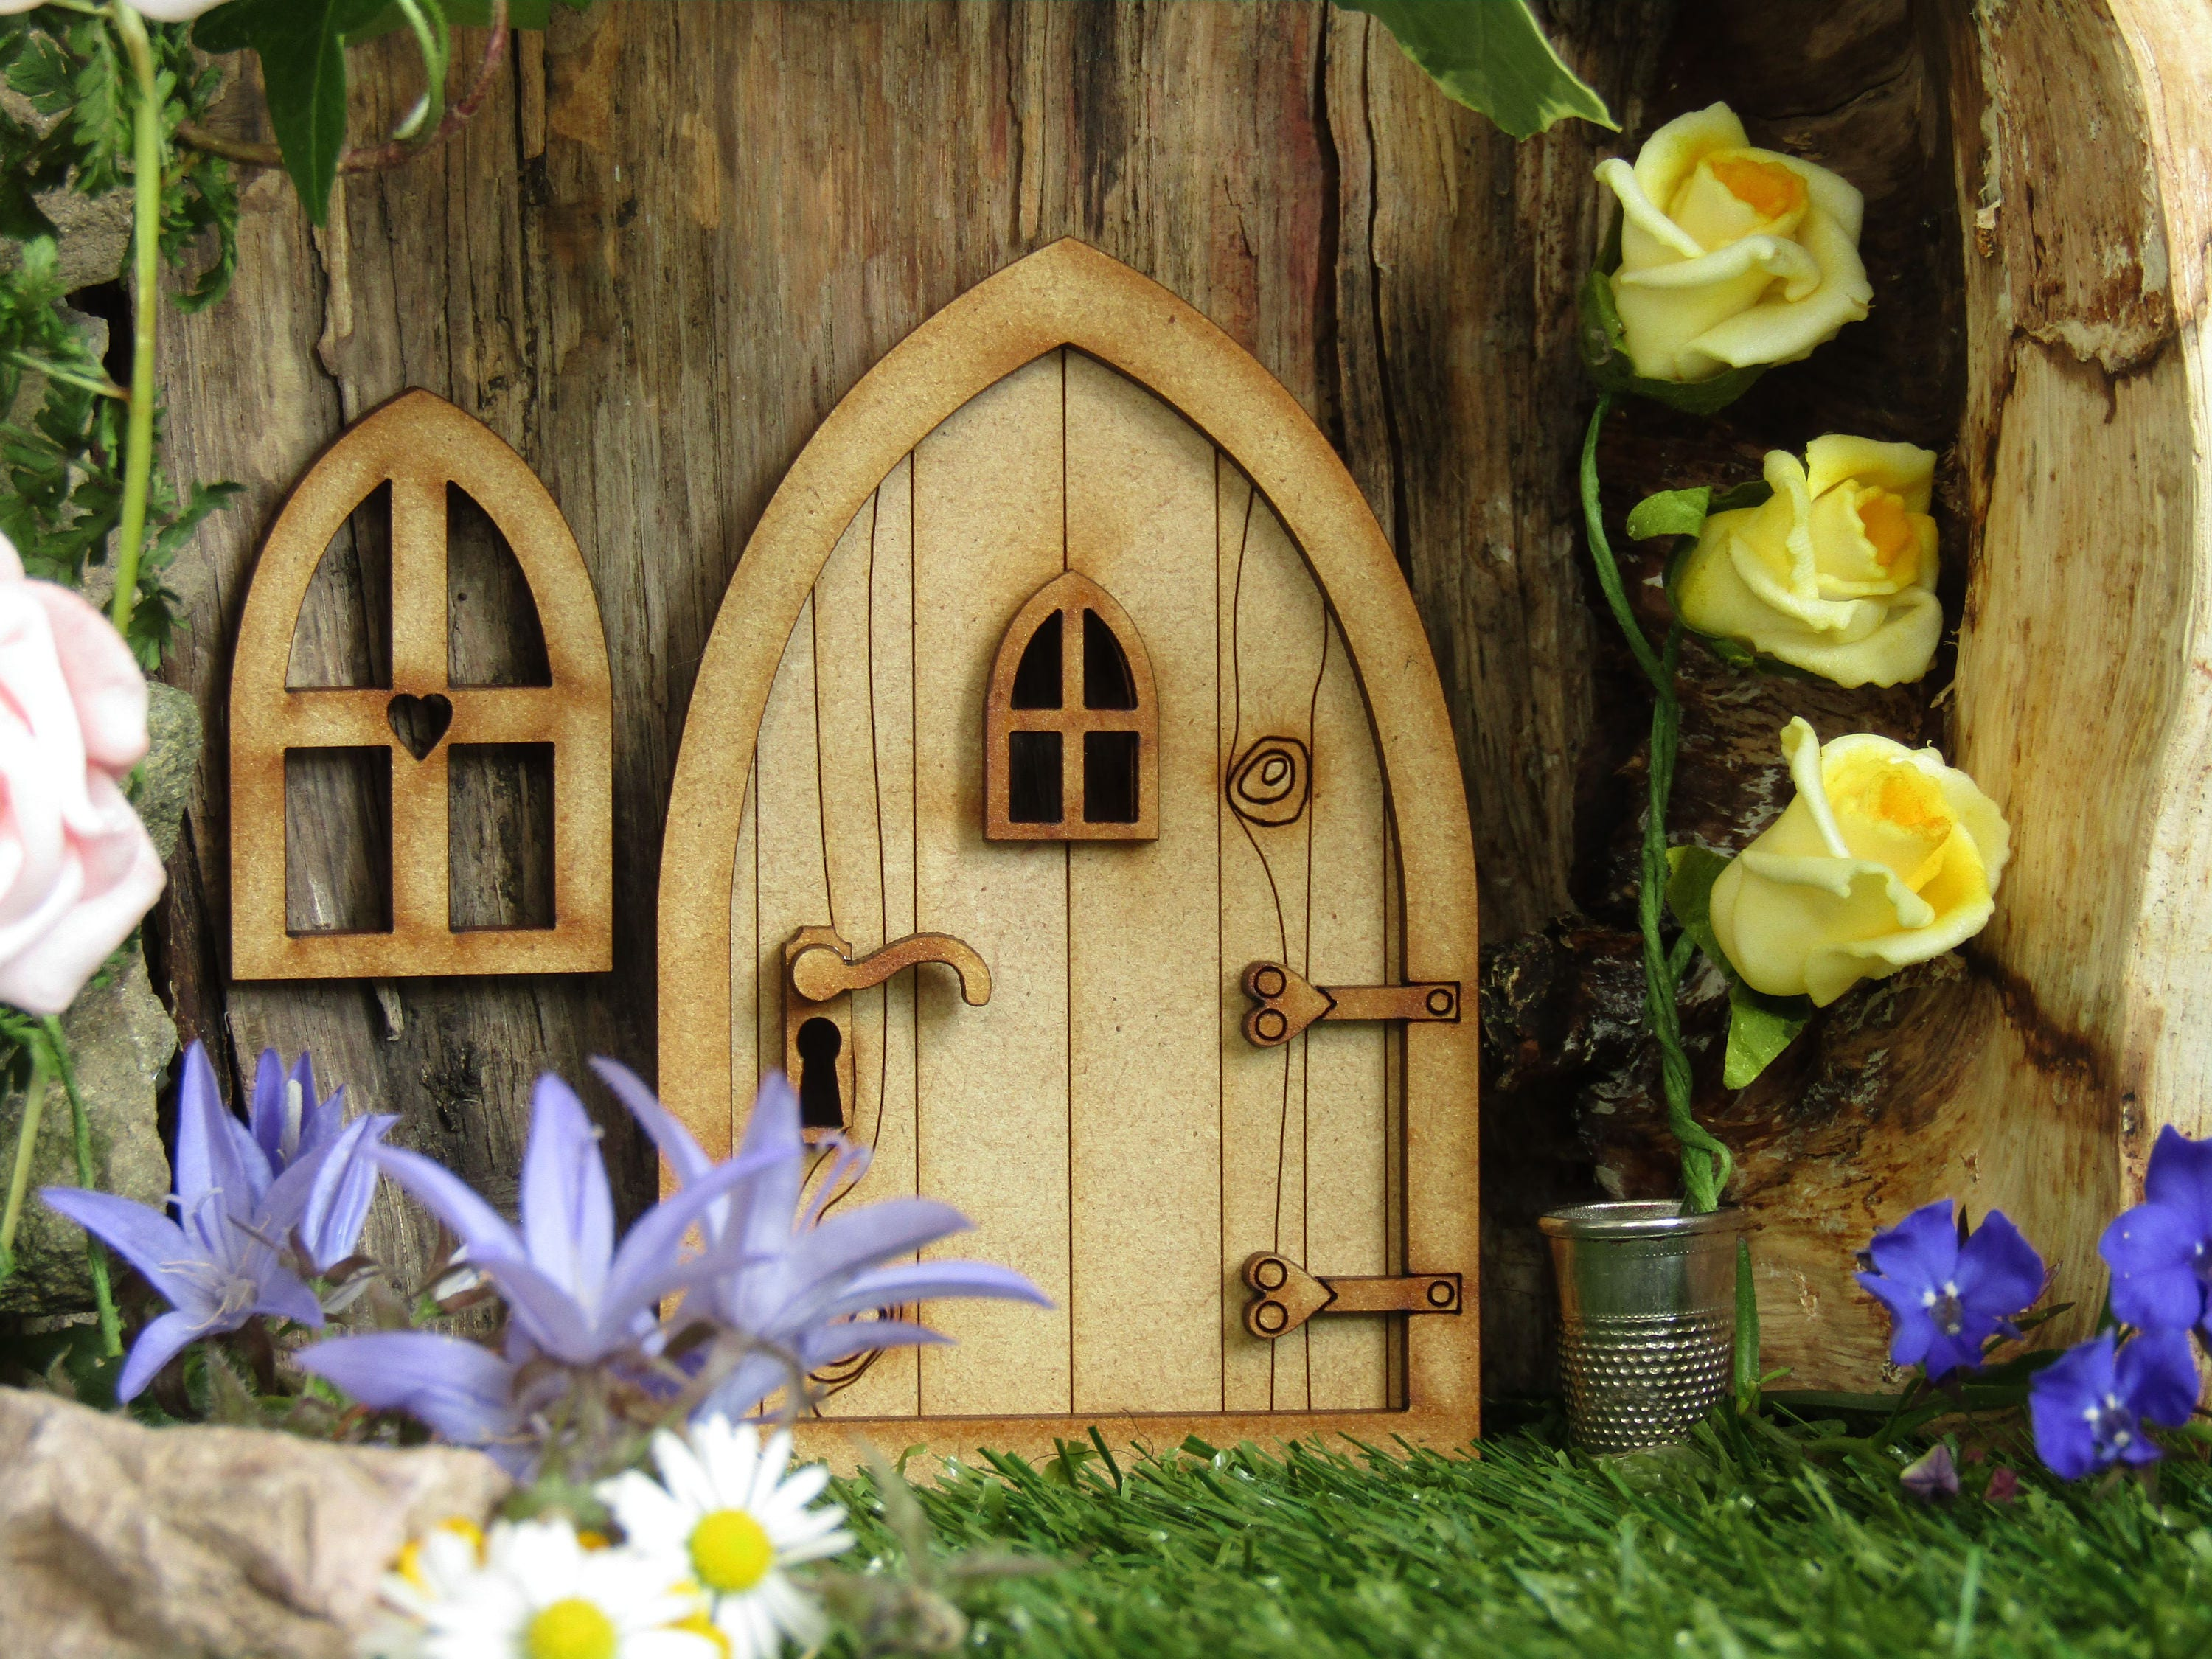 Country cottage wooden 3d fairy door craft kit with fairy for Fairy door kits canada